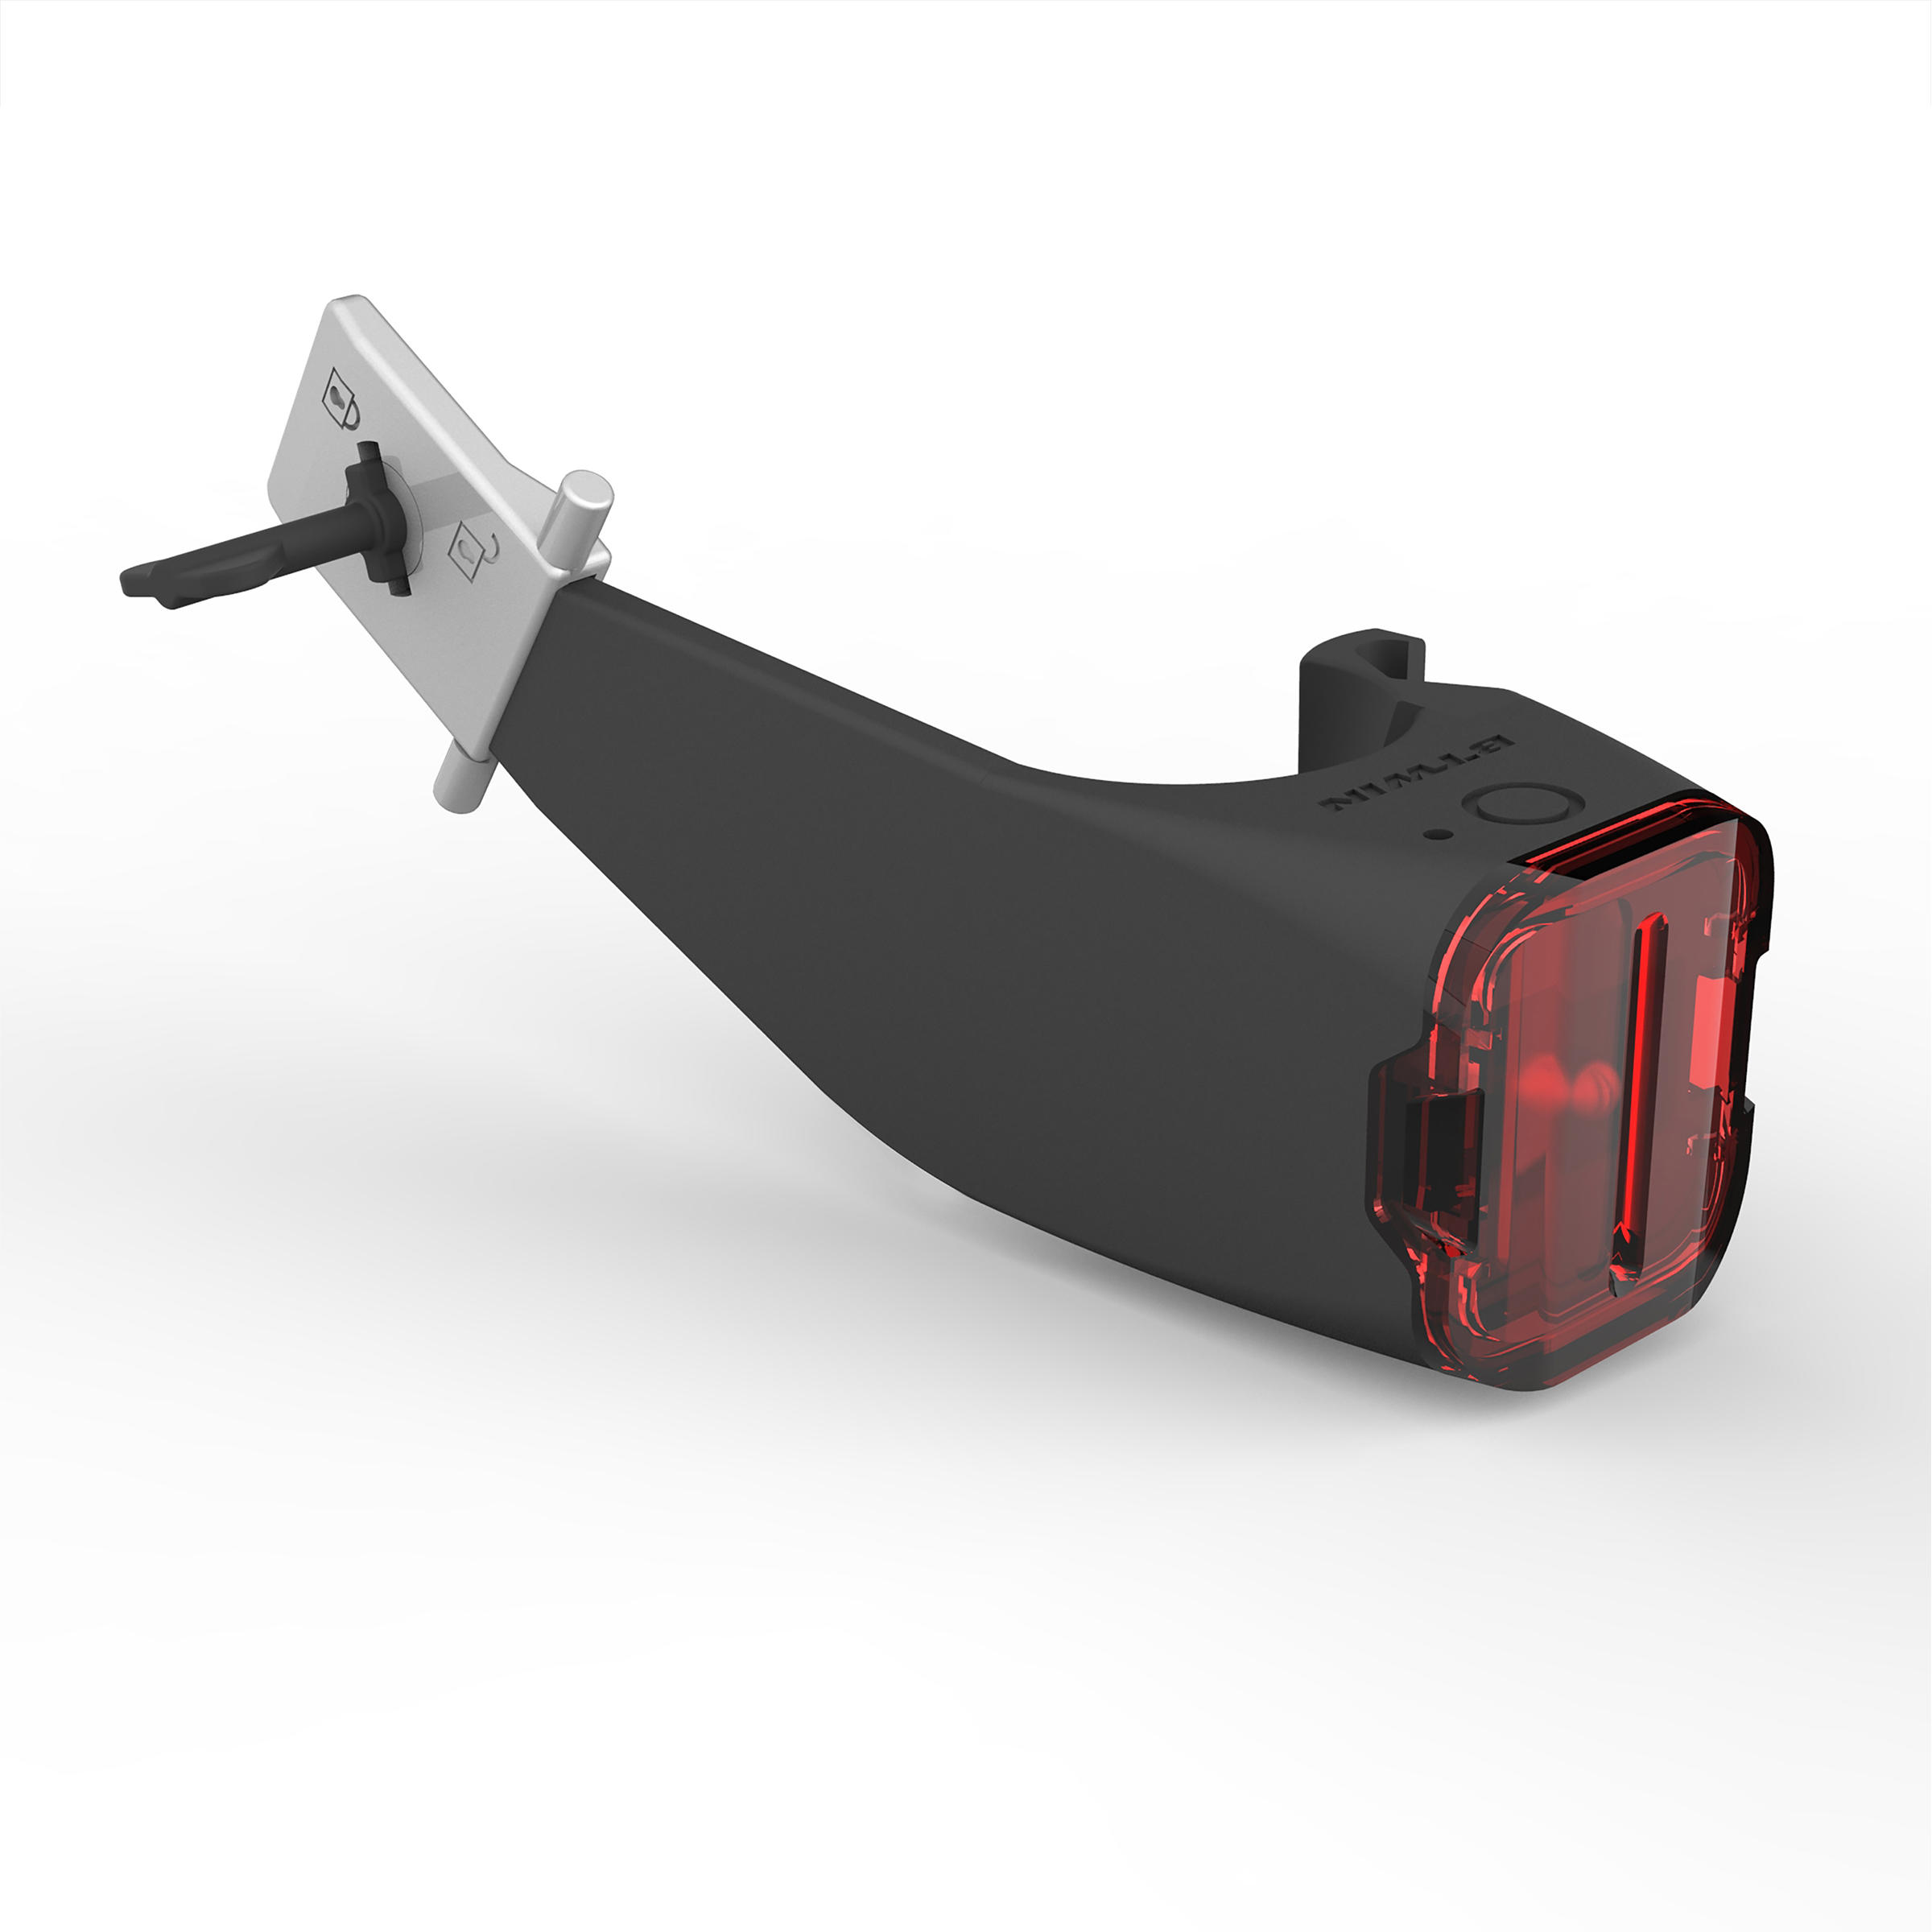 ECLAIRAGE VELO LED VIOO ROAD 500 ARRIERE LOCK USB